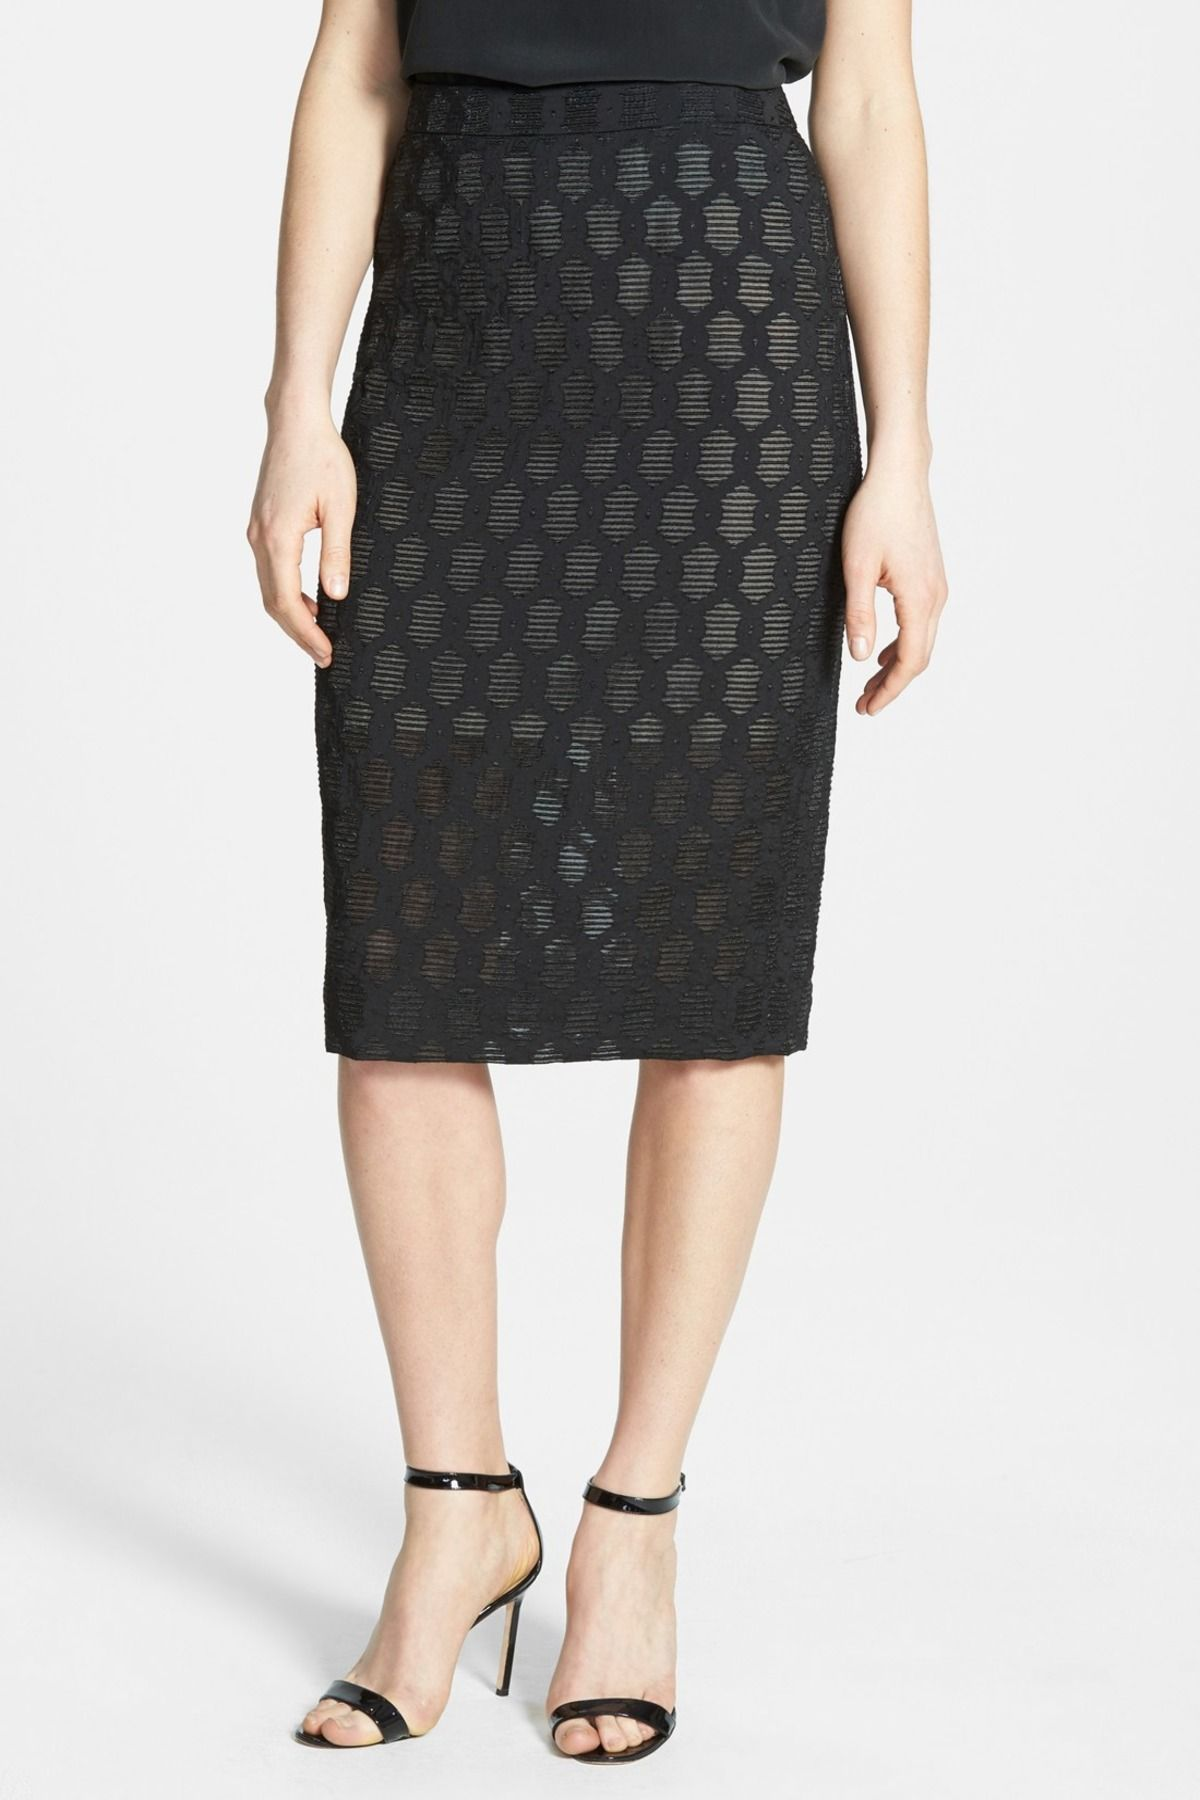 Braided Jacquard Pencil Skirt by Classiques Entier on @nordstrom_rack